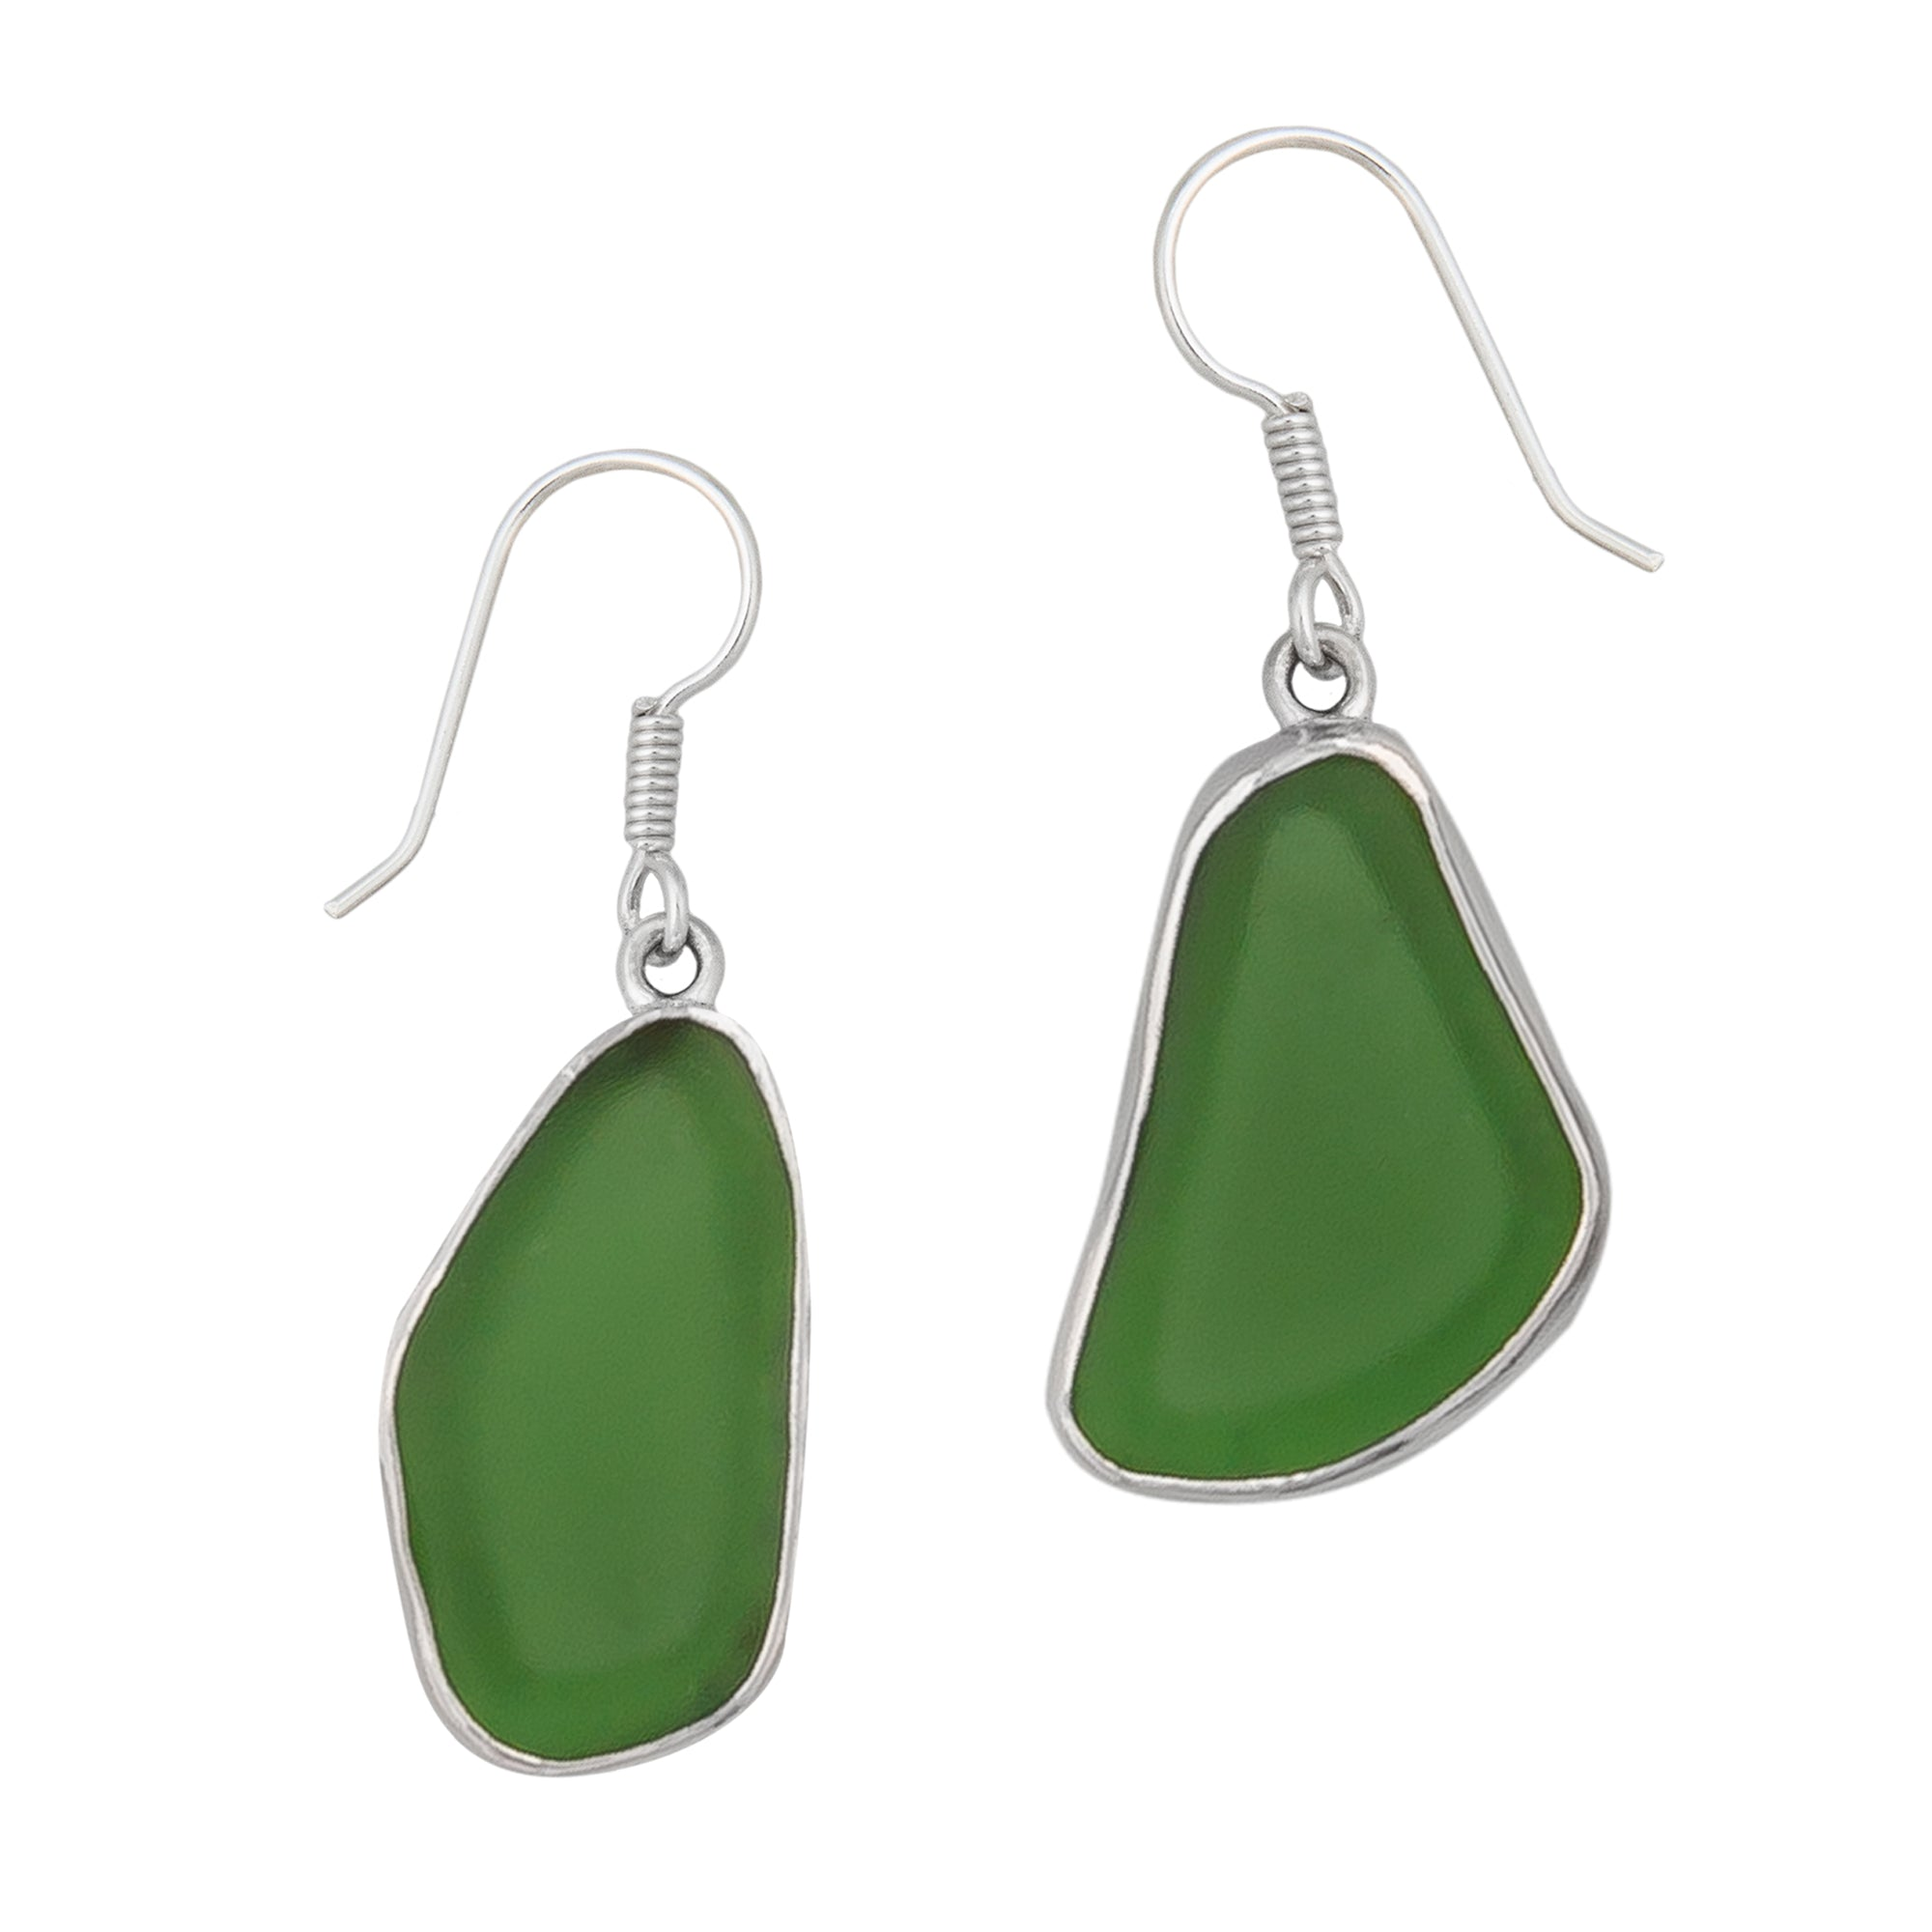 Sterling Silver Green Recycled Glass Drop Earrings | Charles Albert Jewelry